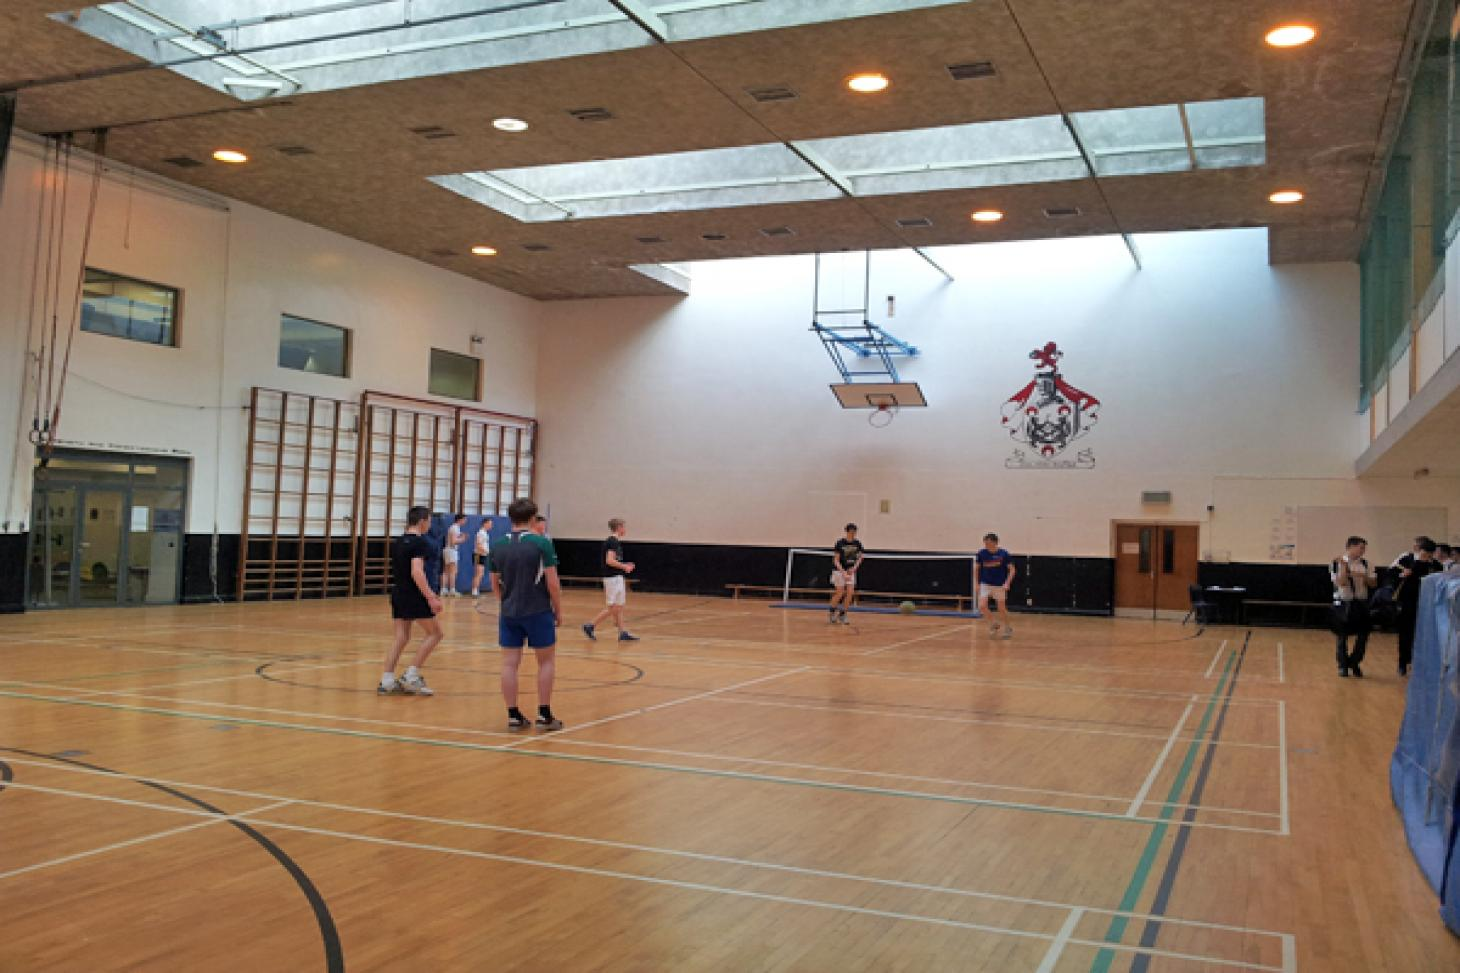 Belvedere College Nets | Sports hall cricket facilities